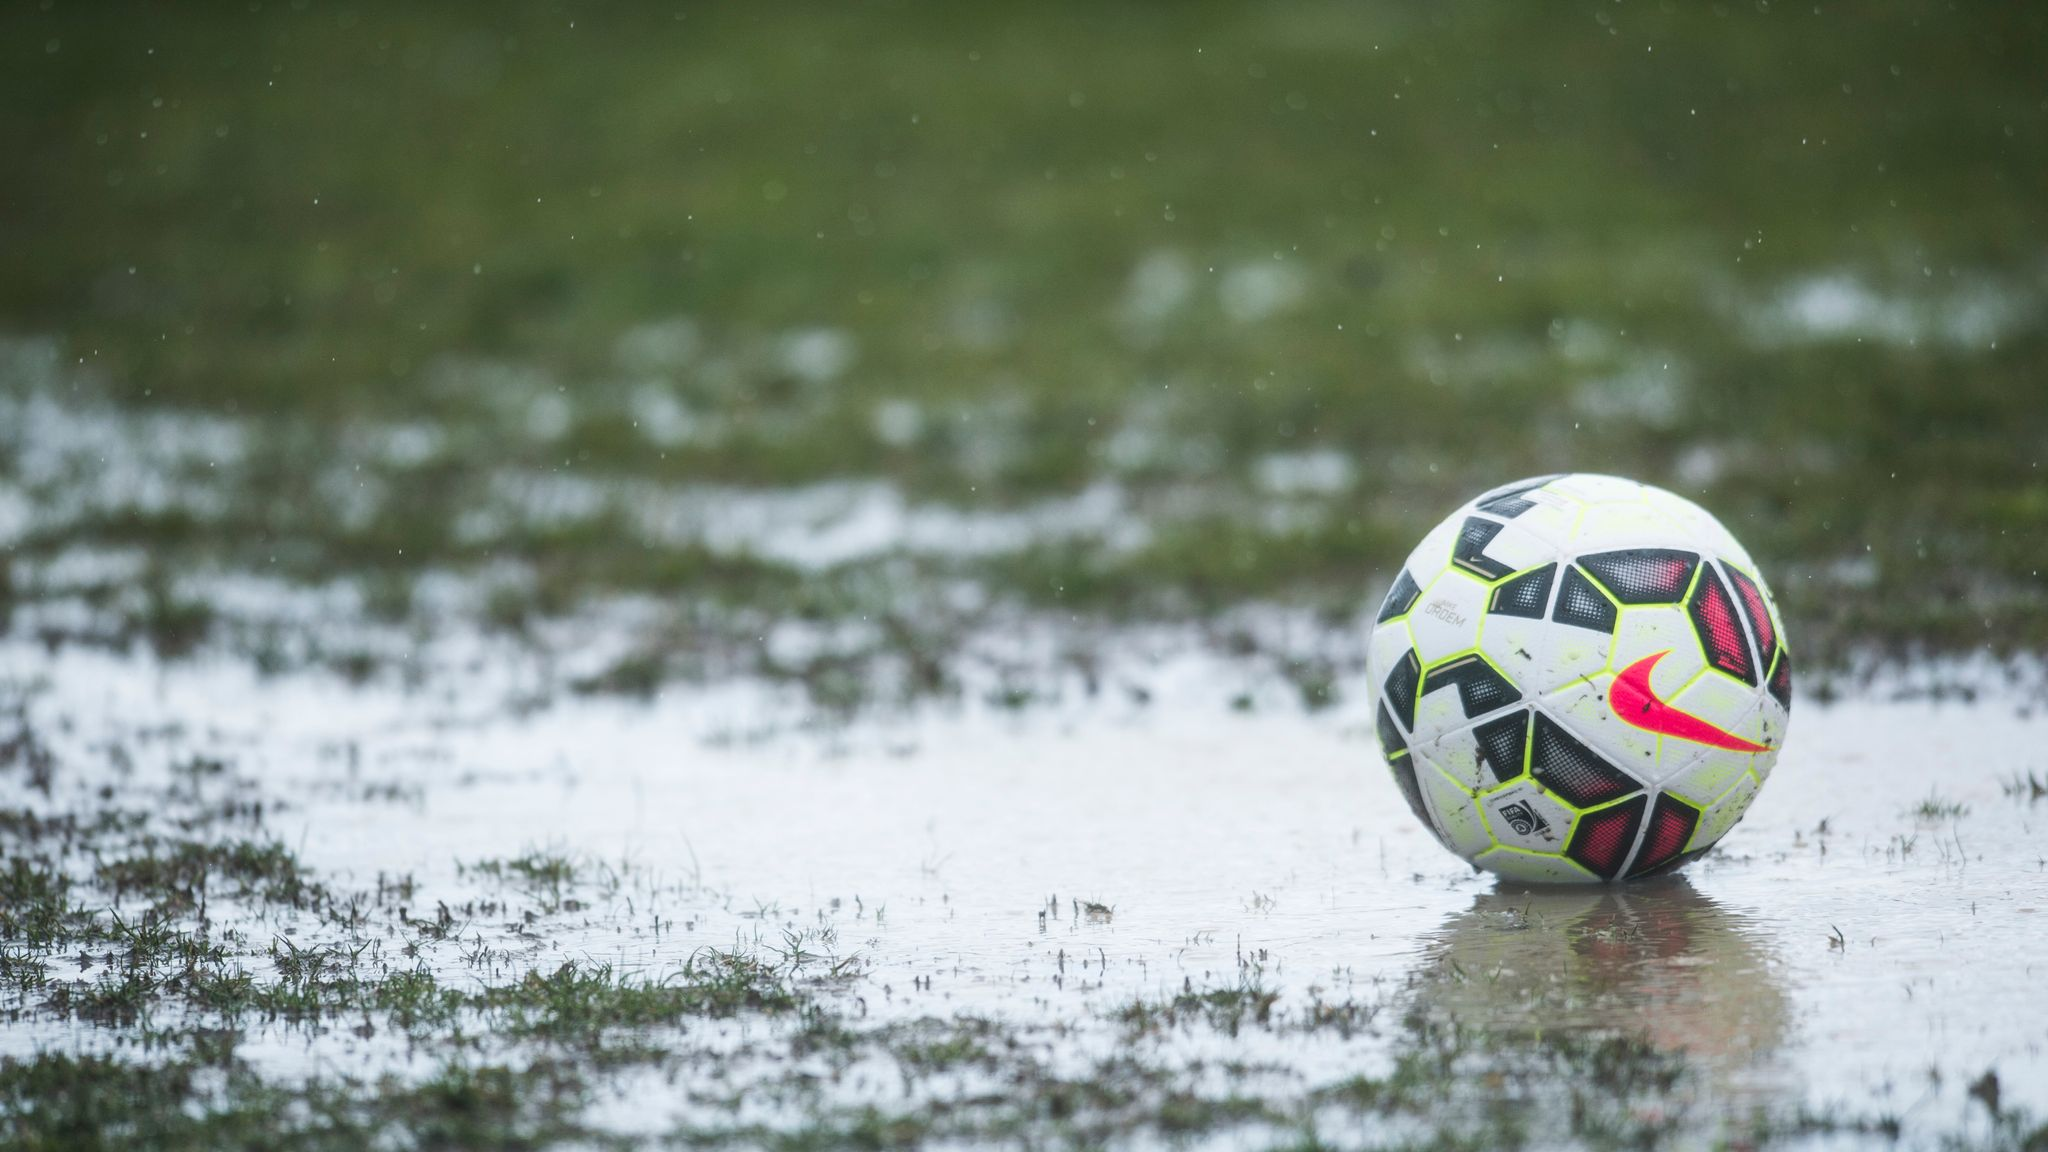 Storm Dennis: Matches postponed as heavy rain and high winds lash the  United Kingdom | Football News | Sky Sports